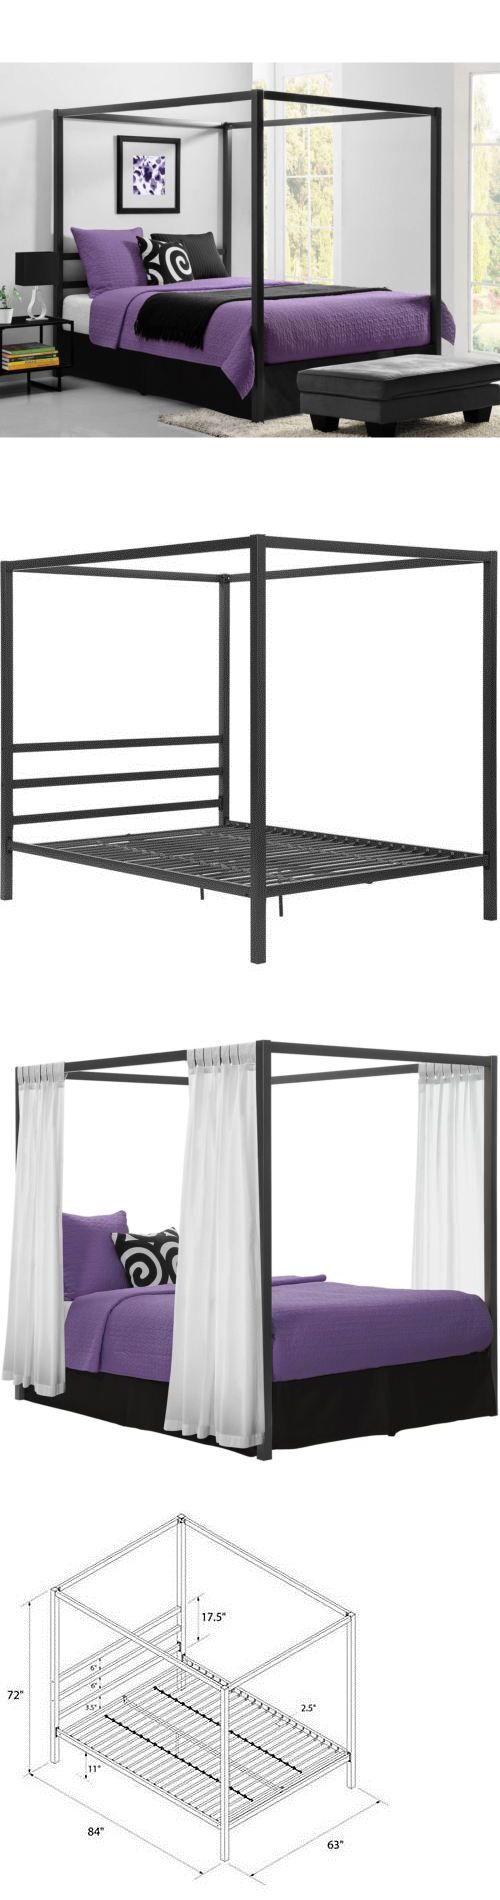 Canopies and Netting 48090: Queen Canopy Metal Bed Frame Modern Industrial Framed Headboard Platform Gray -> BUY IT NOW ONLY: $212.7 on eBay!